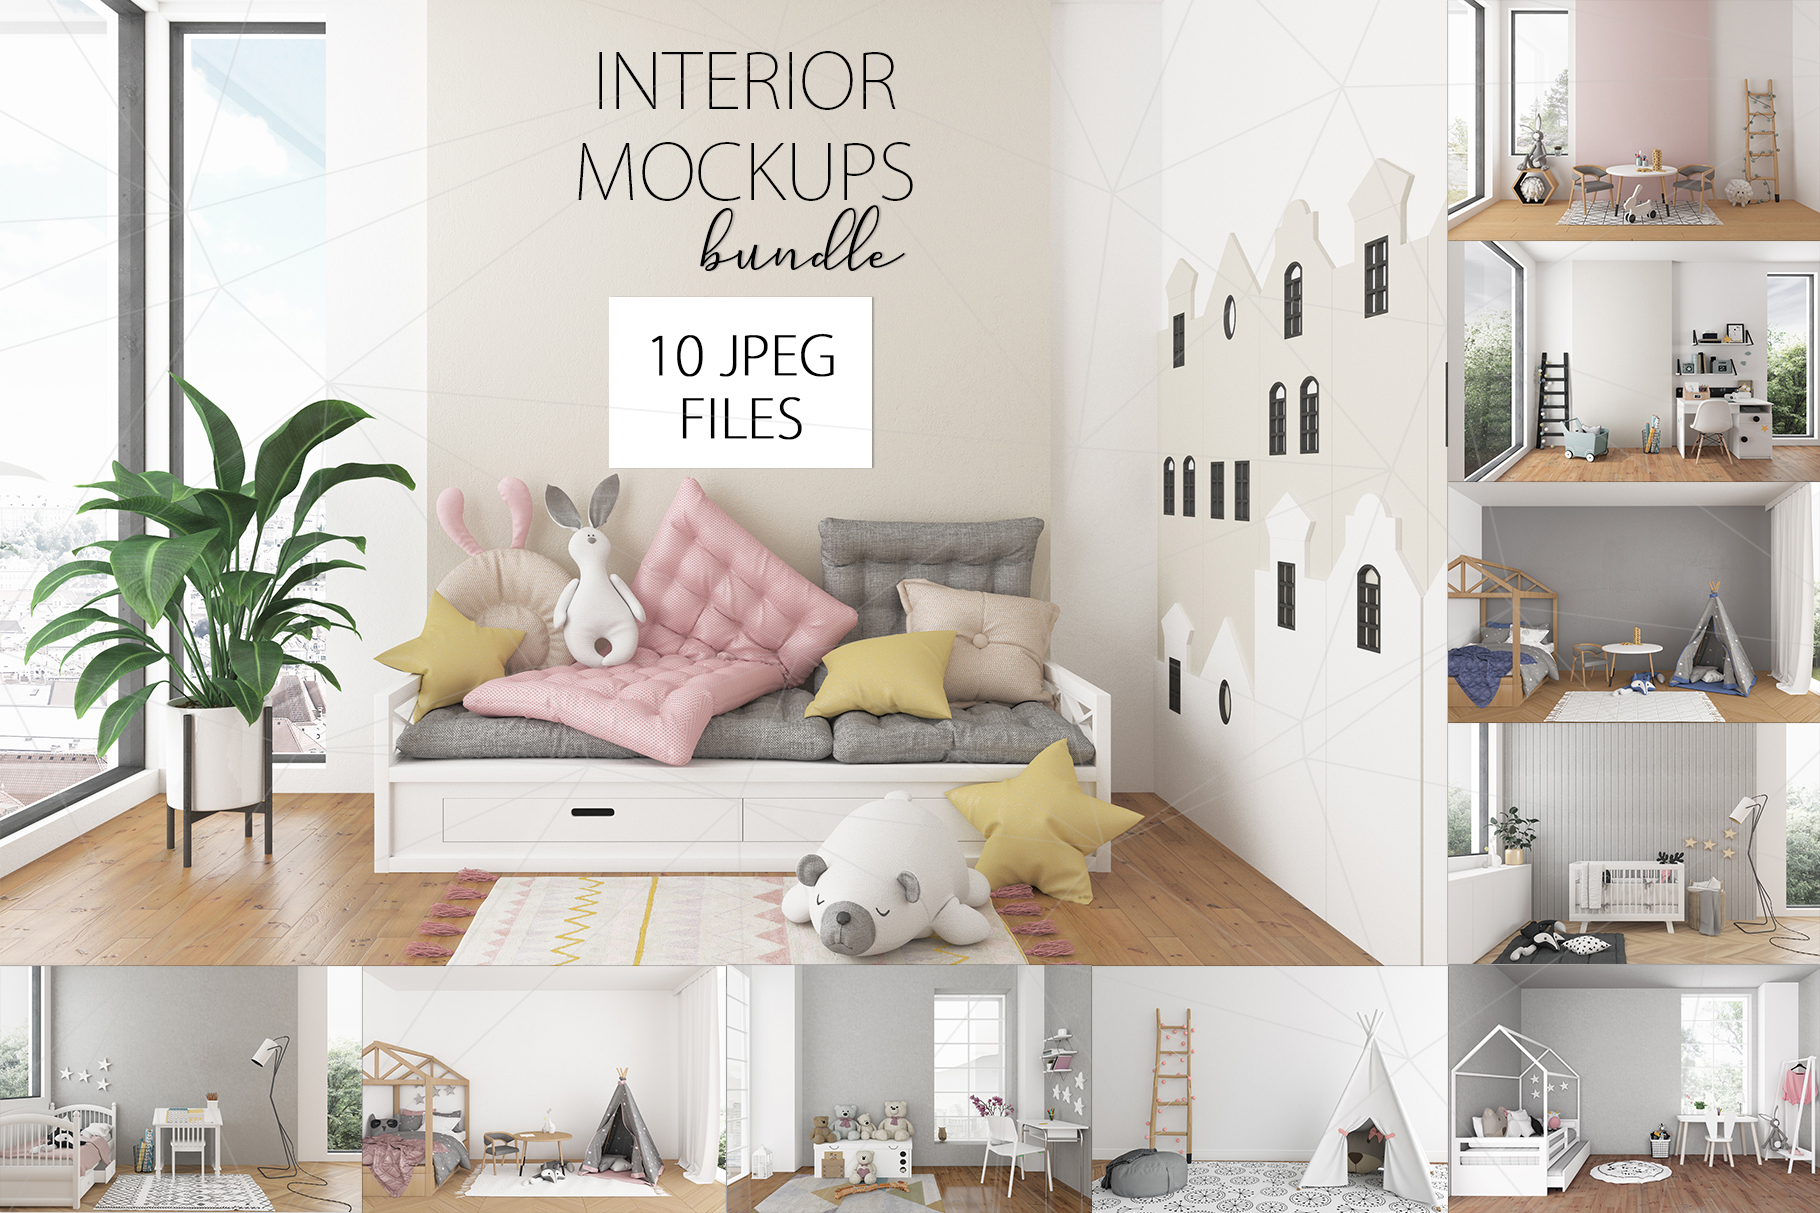 Nursery interior bundle - 10 images 60 off example image 12